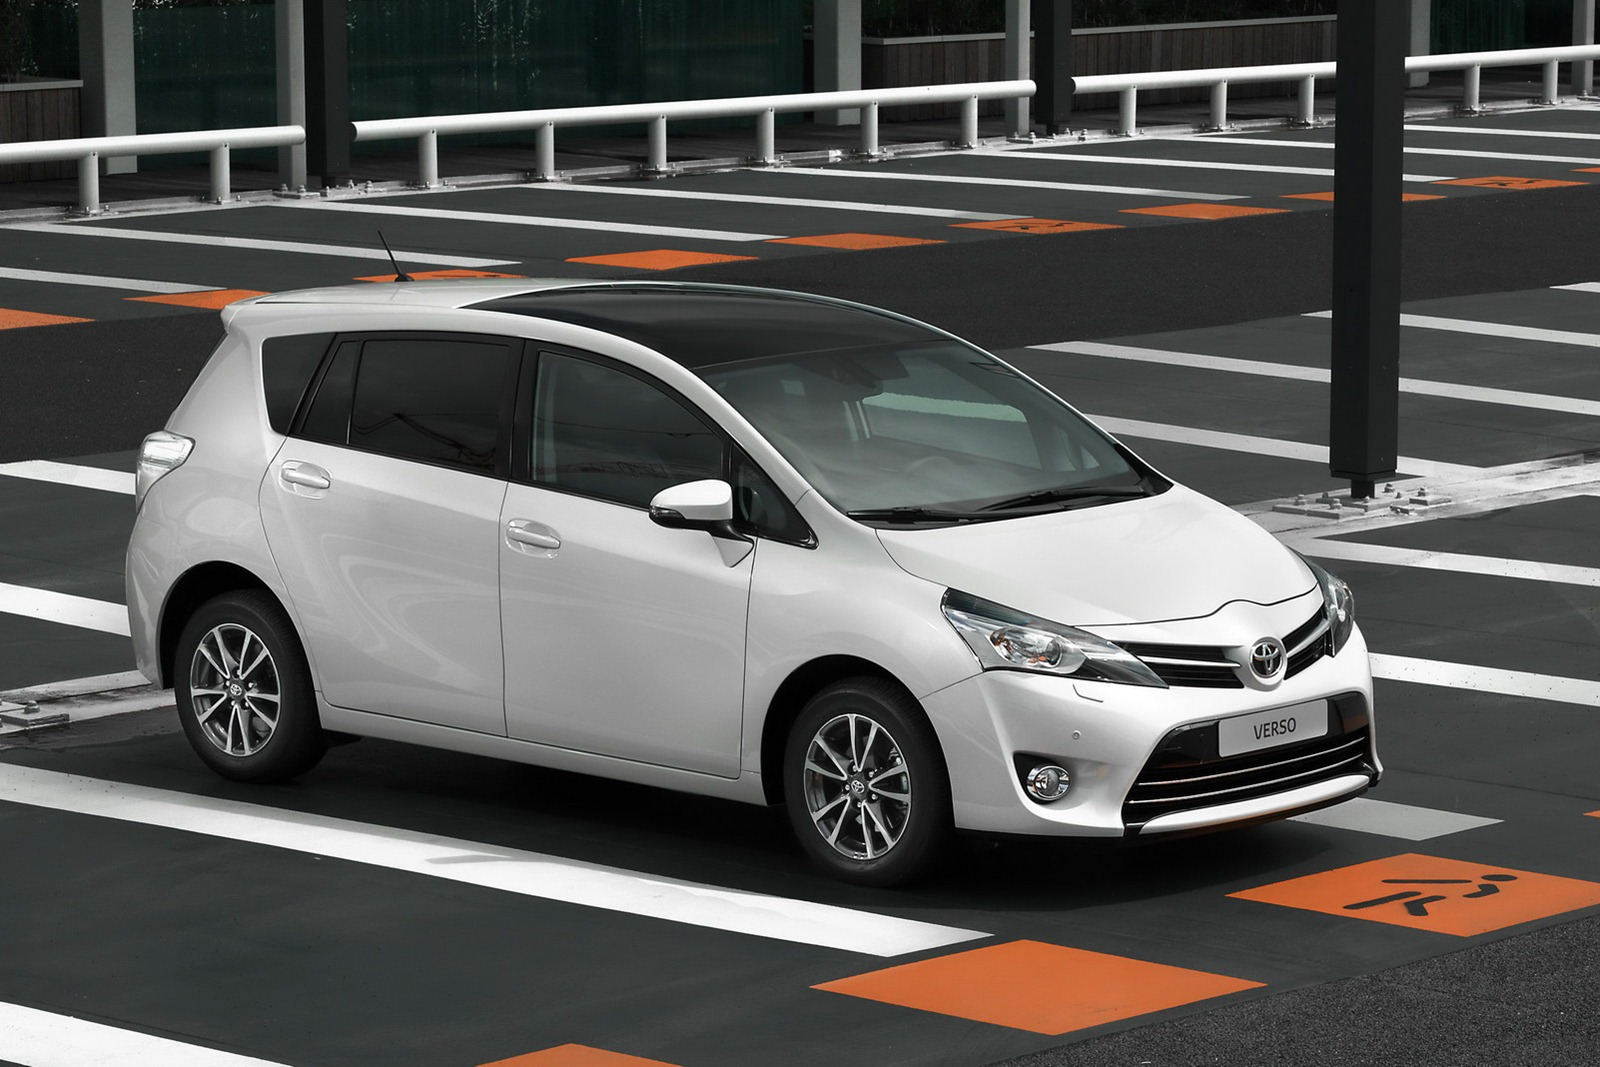 Toyota Verso Mpv Gets A Facelift Photo Gallery on Led Car Trim